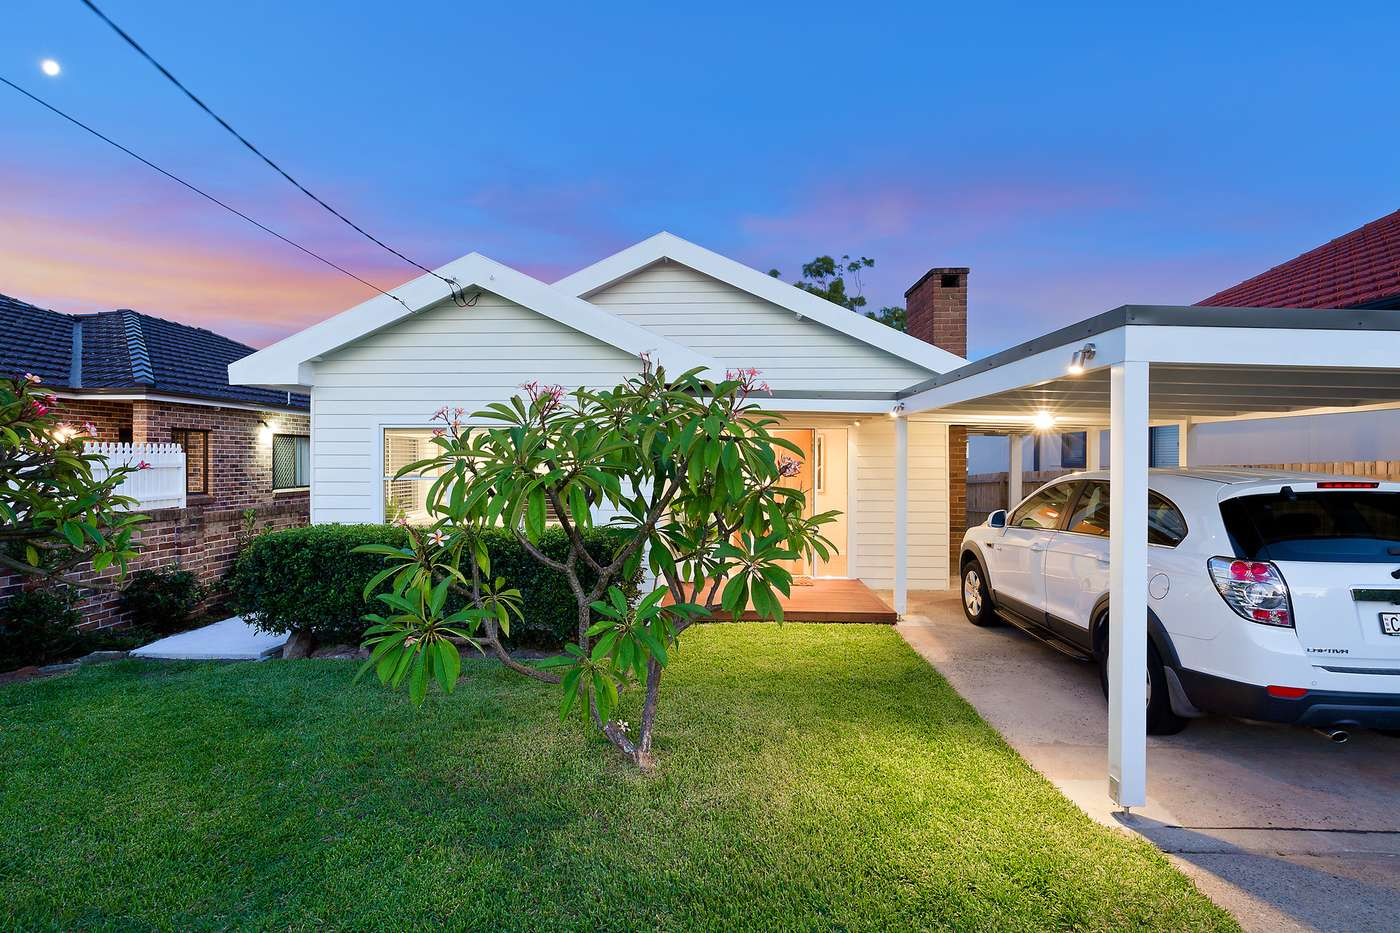 Main view of Homely house listing, 13 Nimbey Avenue, Narraweena, NSW 2099